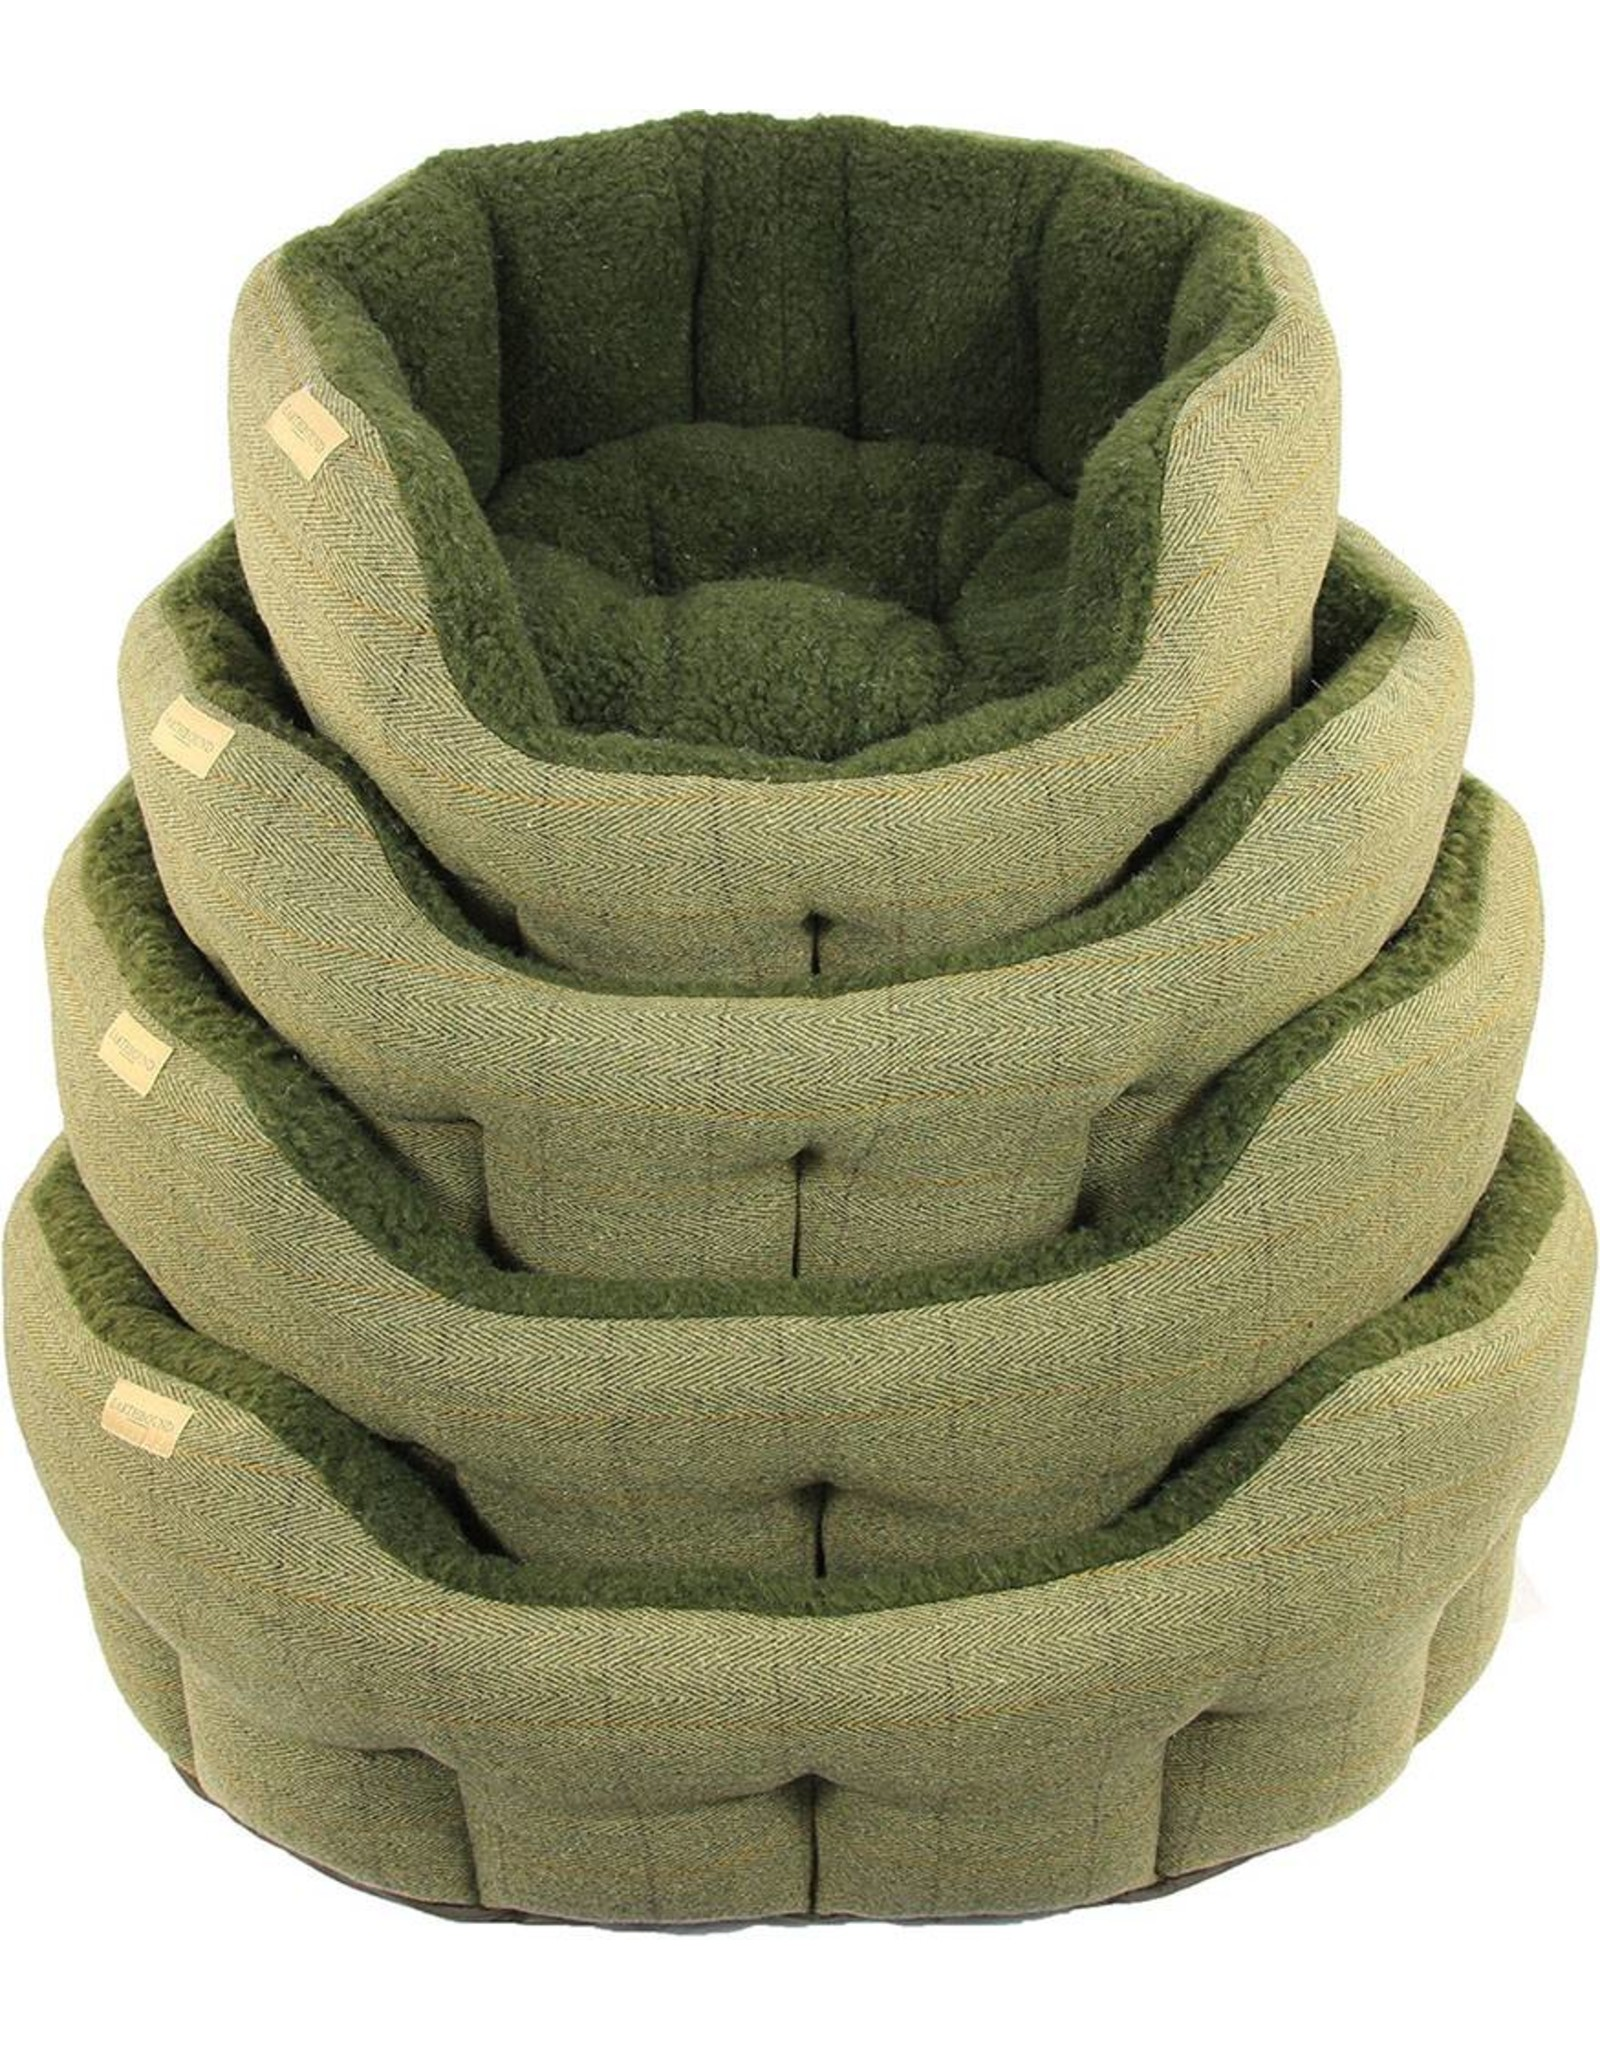 Earthbound Traditional Tweed Dog Bed, Green